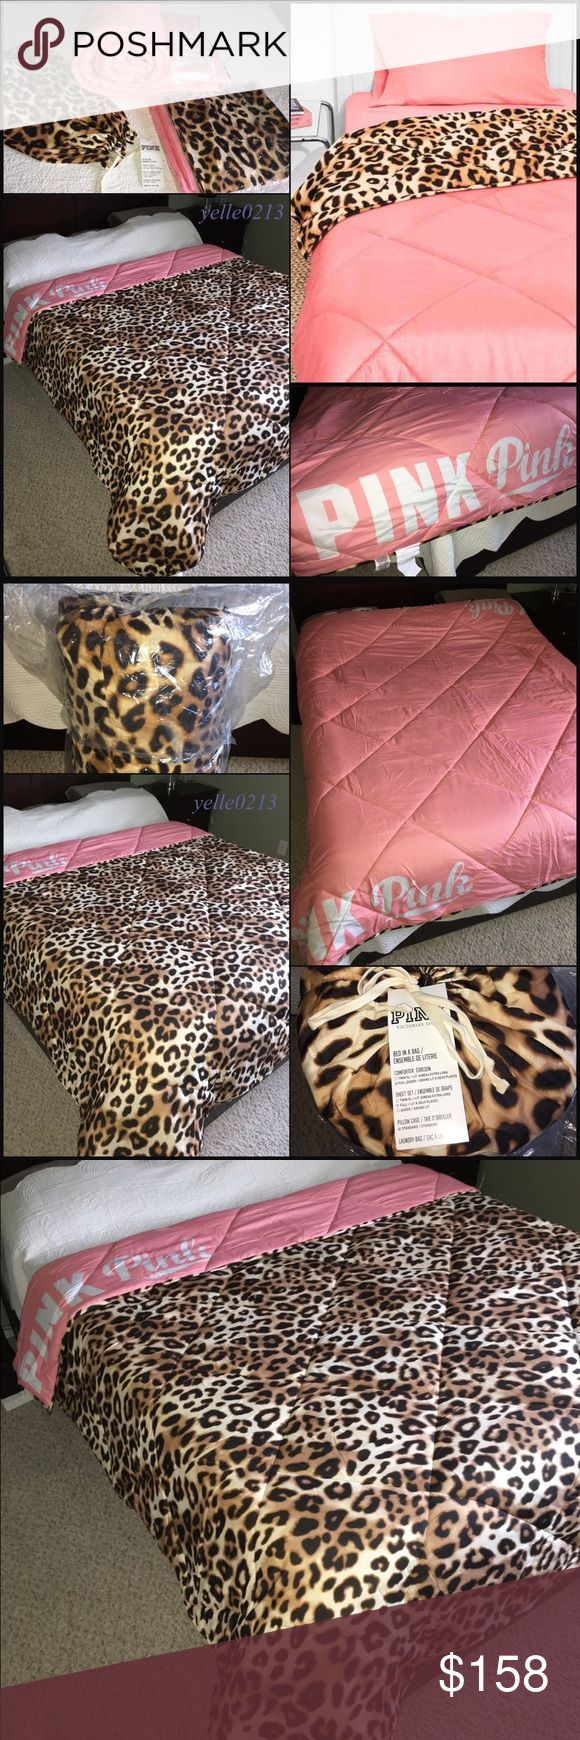 """🎉SALE🎉New VS PINK Bed in a Bag F/Q Nwt VS PINK Bed in a Bag Set..  Size full/queen..  Leopard Hot Pink Colorblock..  Includes: 1 Fitted Sheet 1 Bed Sheet  2 Pillow Cases 1 Reversible Comforter 84"""" x 88""""  BRAND NEW NEVER USED..  Thank you.. PINK Victoria's Secret Accessories"""